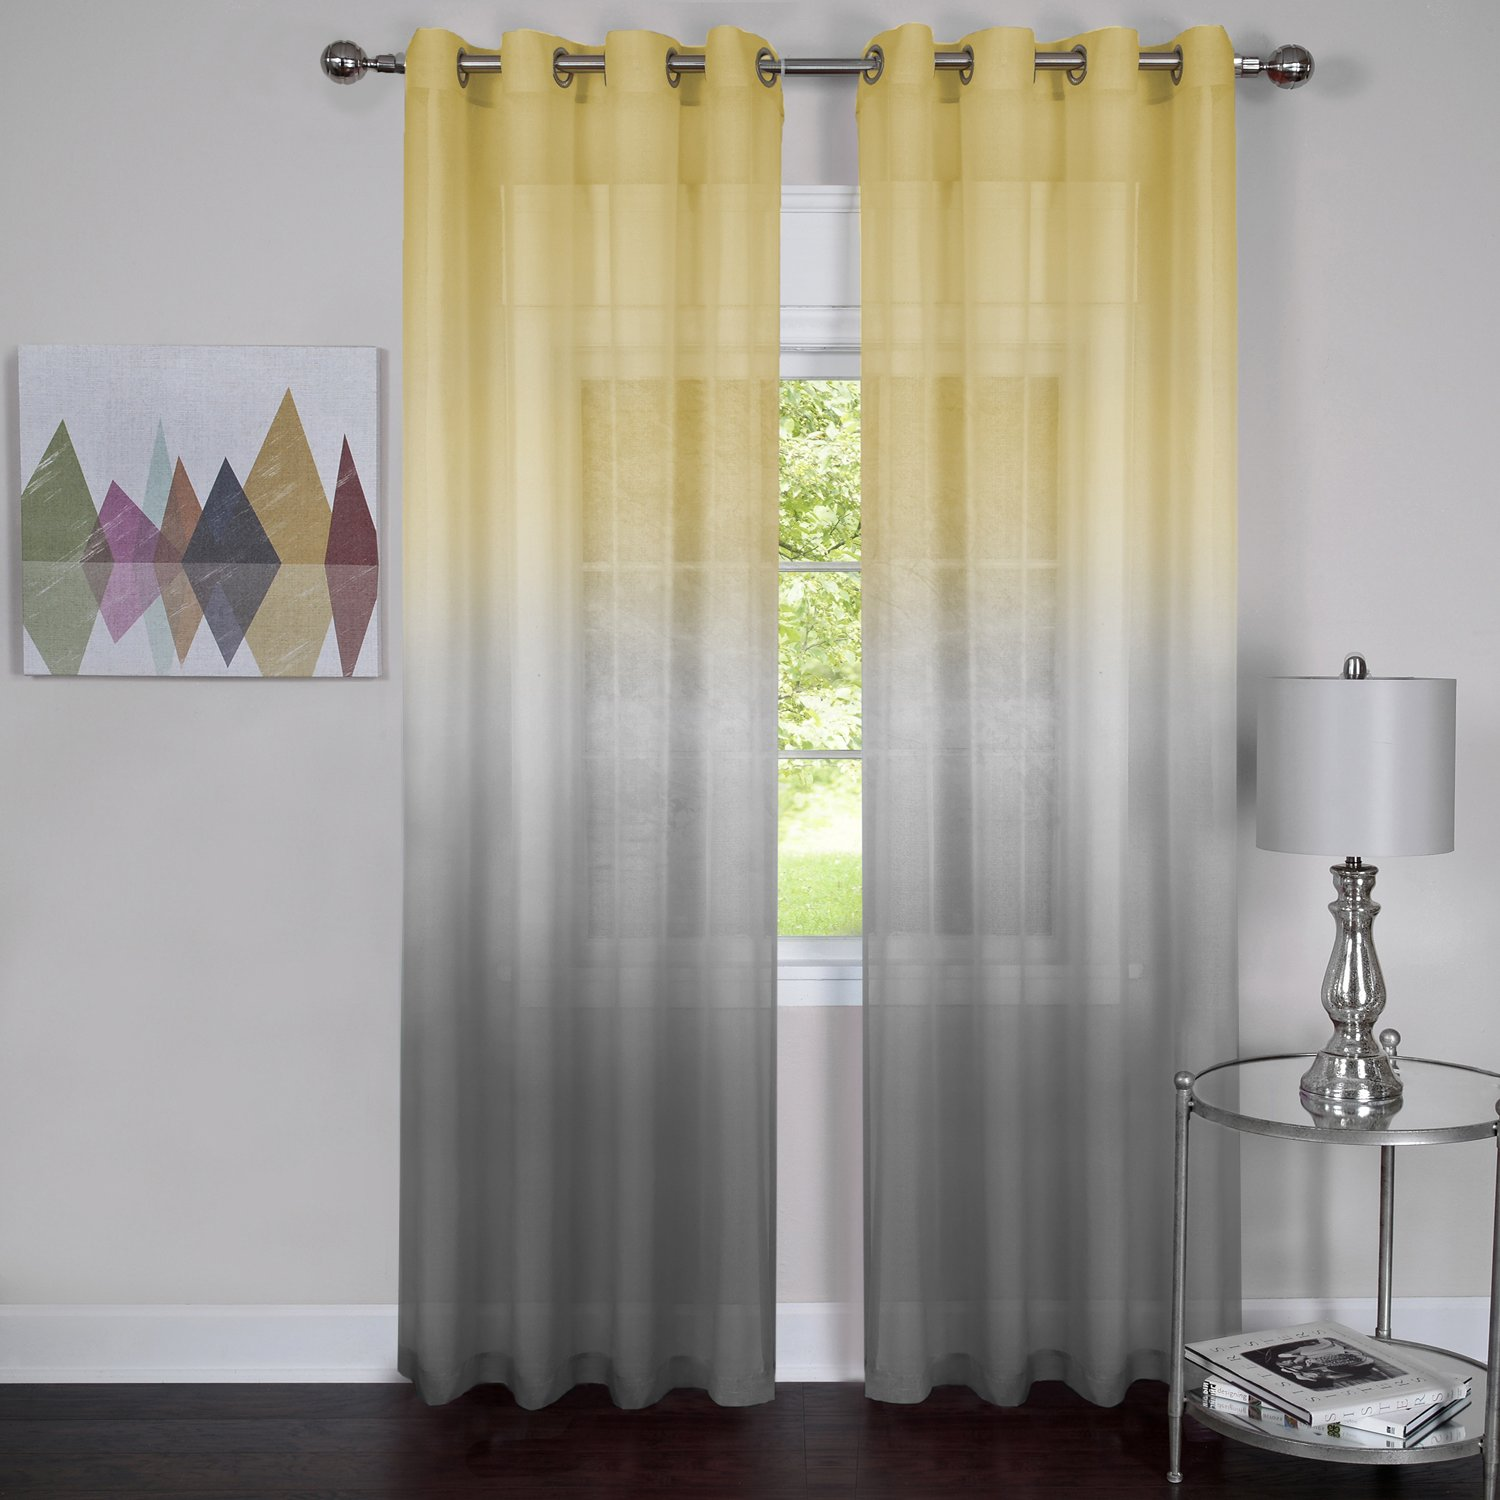 Rainbows and Sunshine Set of 2 Ombre Sheer Window Curtain Panels Grey